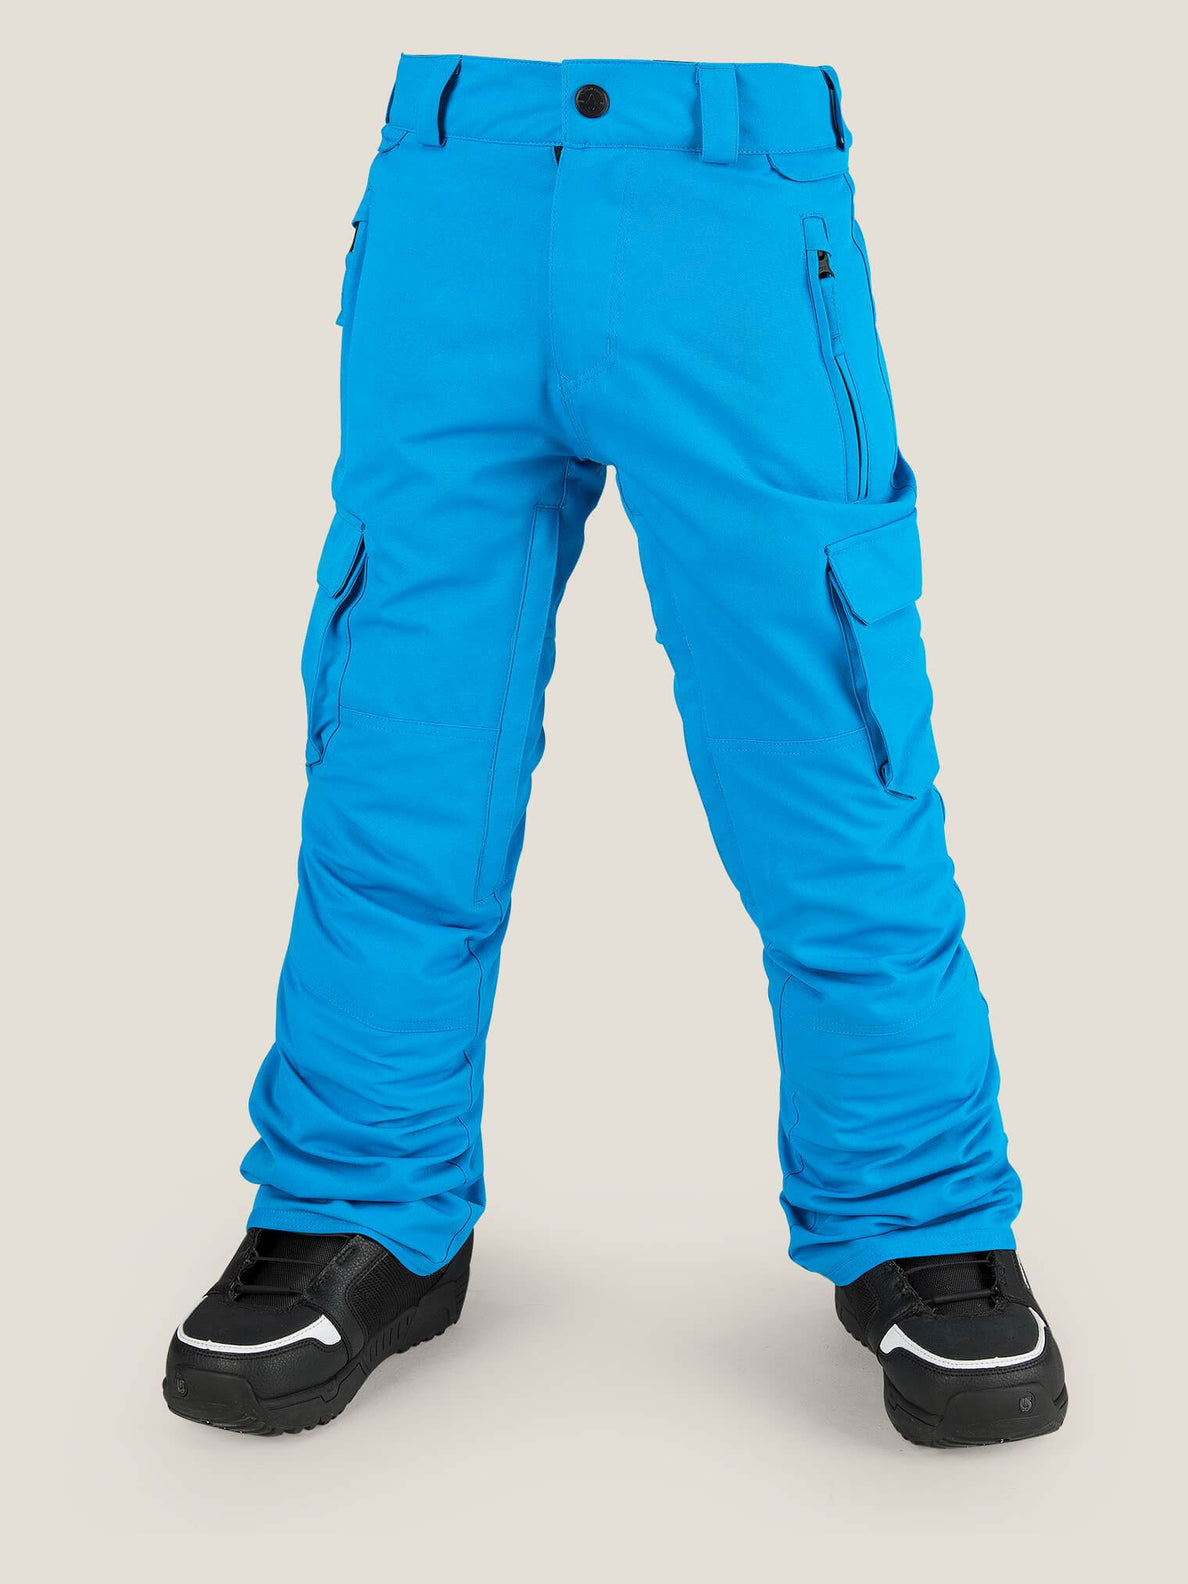 Cargo Insulated Pant In Blue, Front View